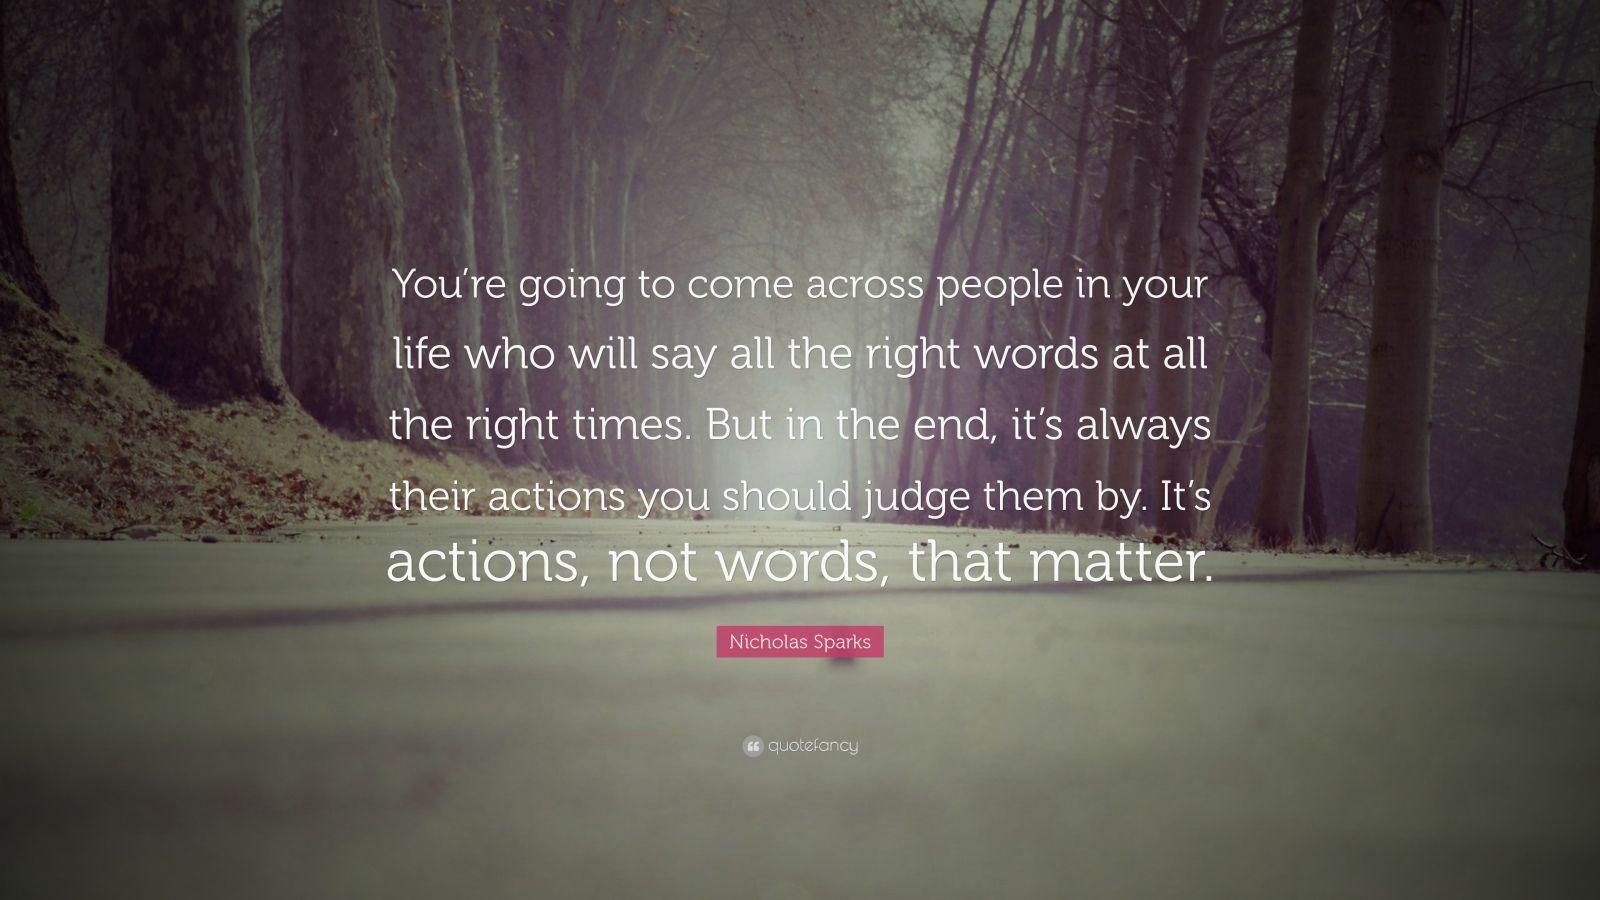 "Nicholas Sparks Quote: ""You're going to come across people in your life who will say all the right words at all the right times. But in the end, it's always their actions you should judge them by. It's actions, not words, that matter."""